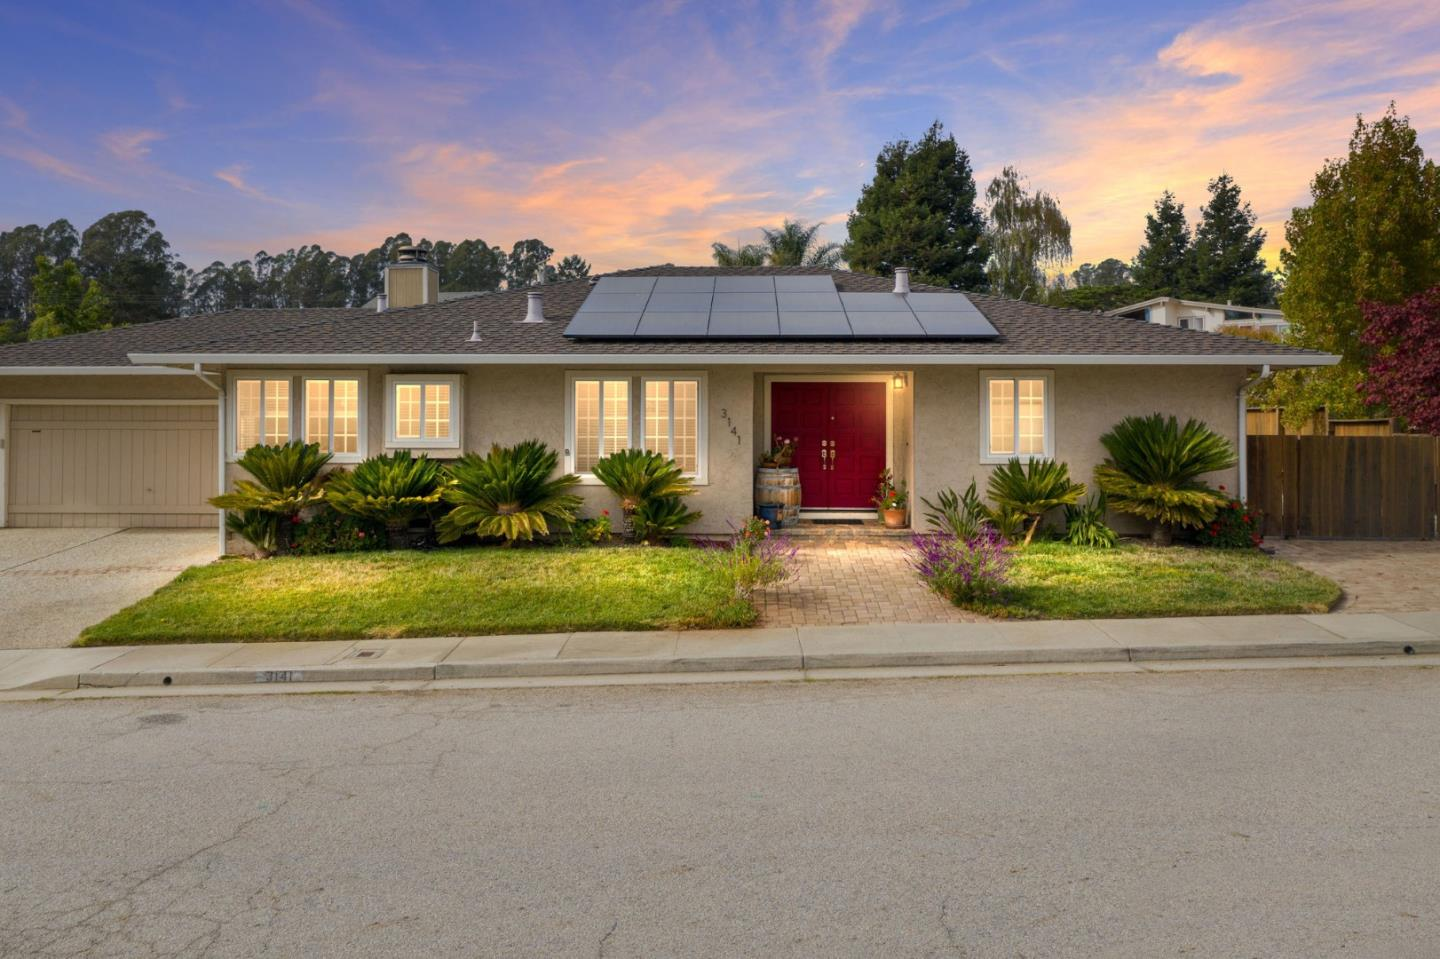 Both beautiful & modern, this single-level 3BR/2BA home is located on a corner lot in a lovely Soquel neighborhood - less than a mile to the beach. The interior of the the home features a sunken living room with a wood beamed ceiling and fuel burning stone-faced fireplace. Newly installed vinyl plank flooring in the kitchen, dining room & entry plus radiant heated marble tile in the bathrooms. In addition to being well insulated and having upgraded vinyl windows, the home features an efficient forced air gas furnace which results in low natural gas bills in the winter, and an owned solar panel system which means low electricity bills. This property also has an attached two car garage, sunny & fenced back yard w/ a custom arbor, and a large paved side yard big enough to park an RV/boat plus a sewer inlet, hot/cold water supply, and an electrical hook up. Walking distance to Maplethorpe Park and New Brighton State Beach, just minutes to great schools, shopping, dining and freeway access.